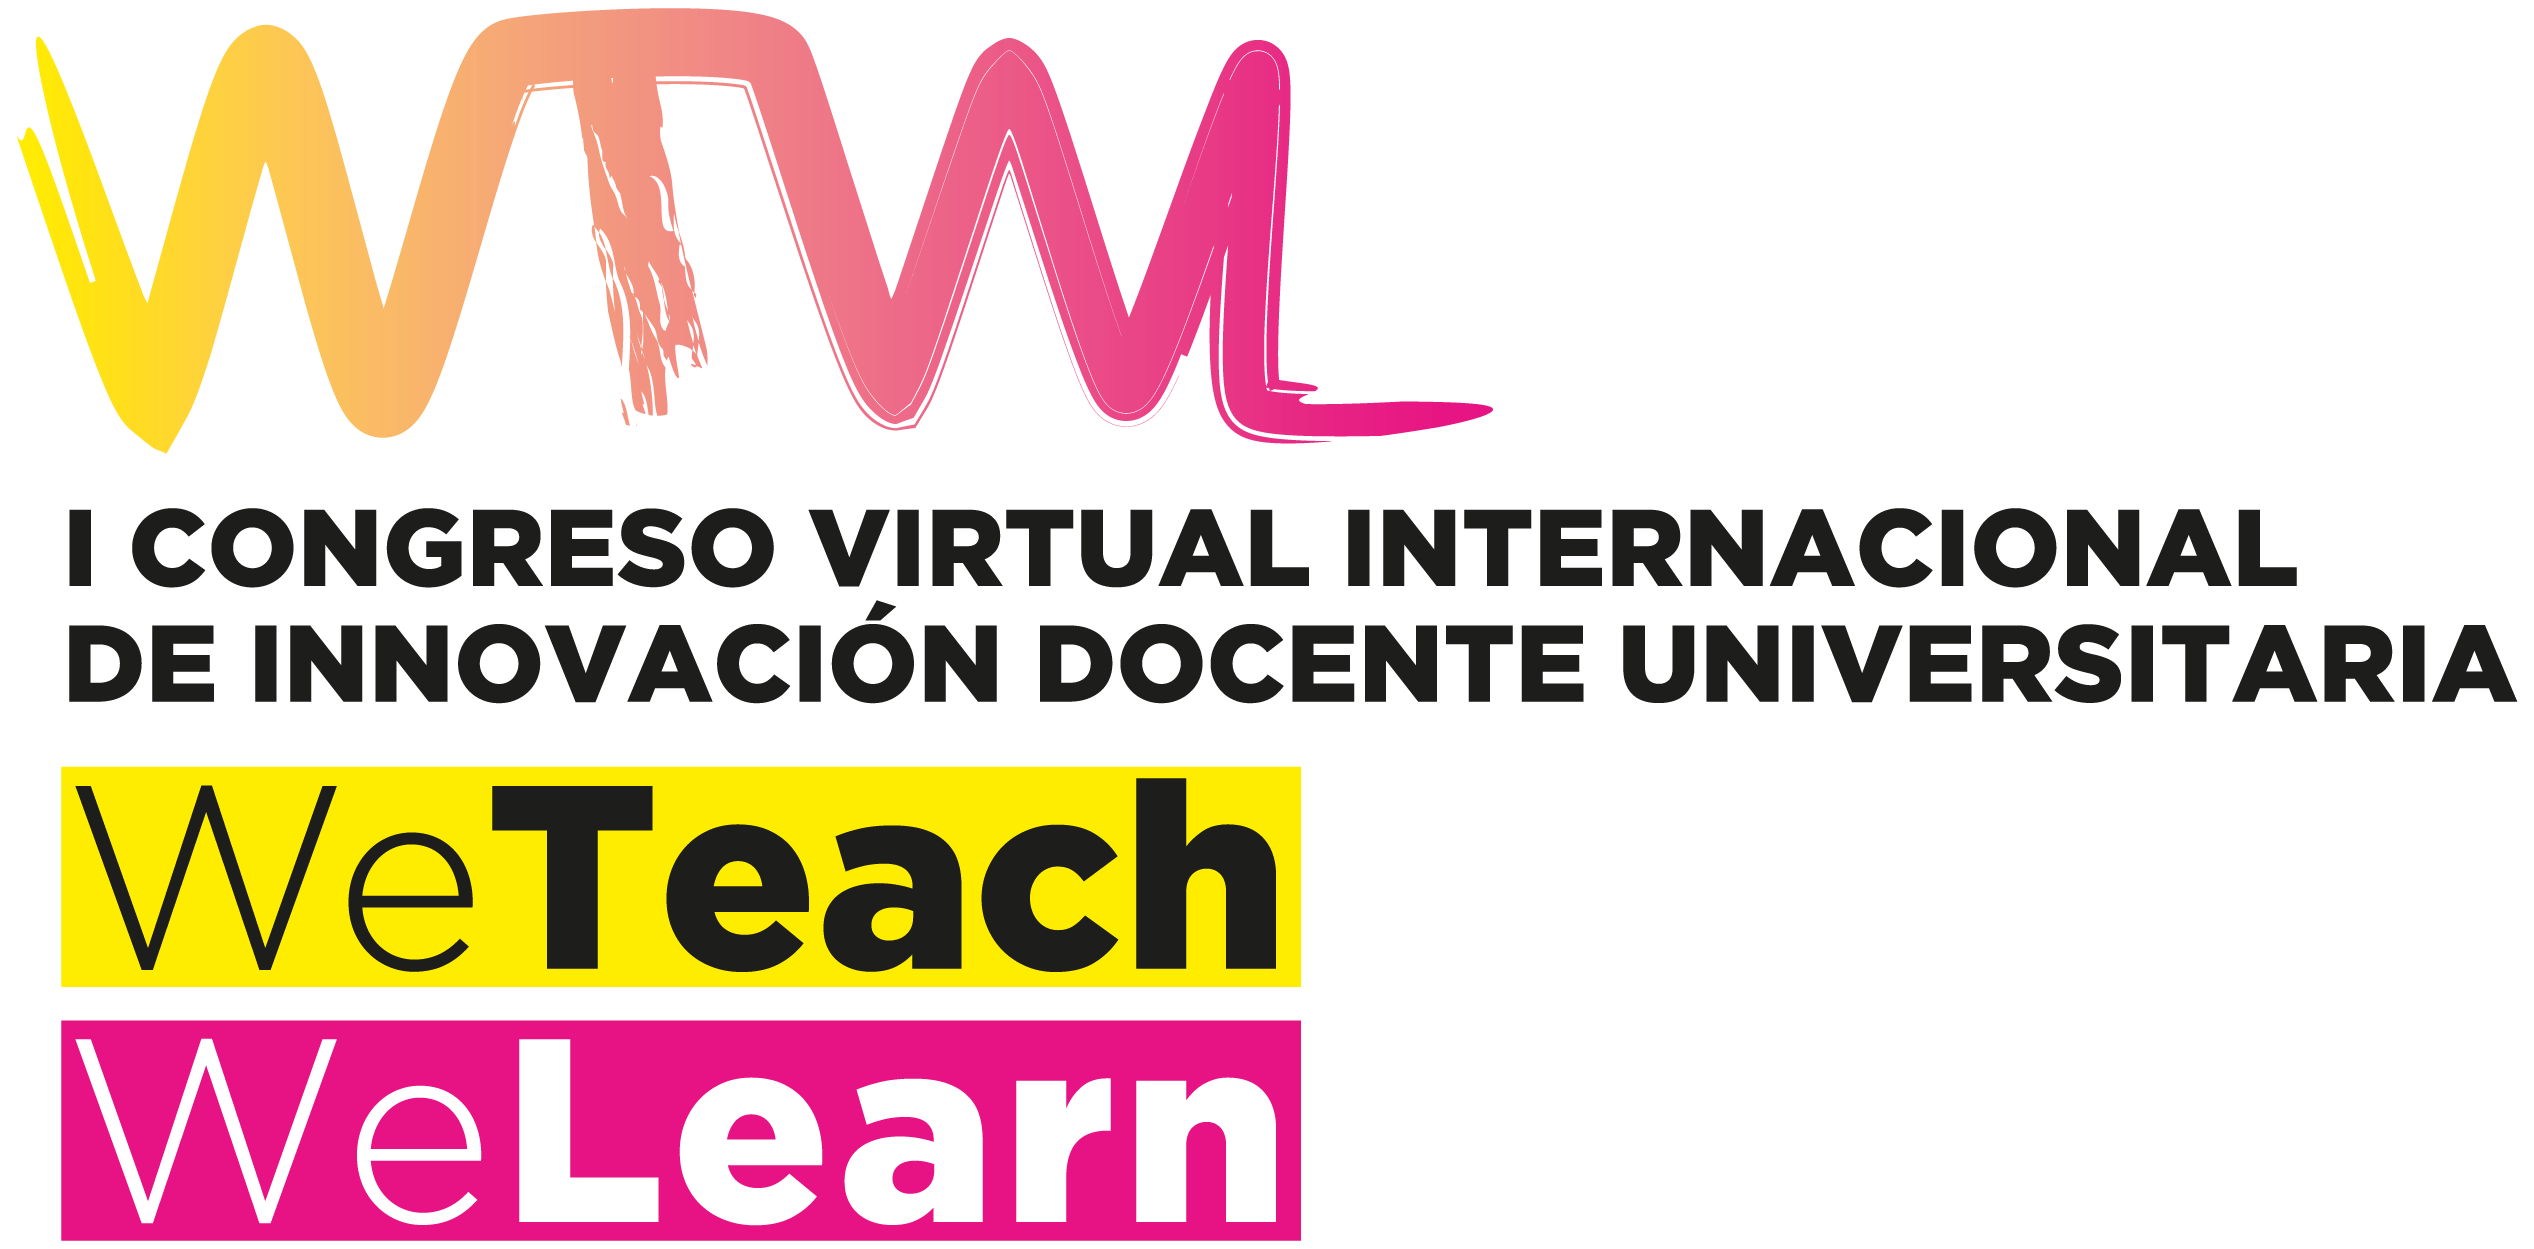 I Congreso Internacional Virtual de Innovación Docente Universitaria. We teach & We learn